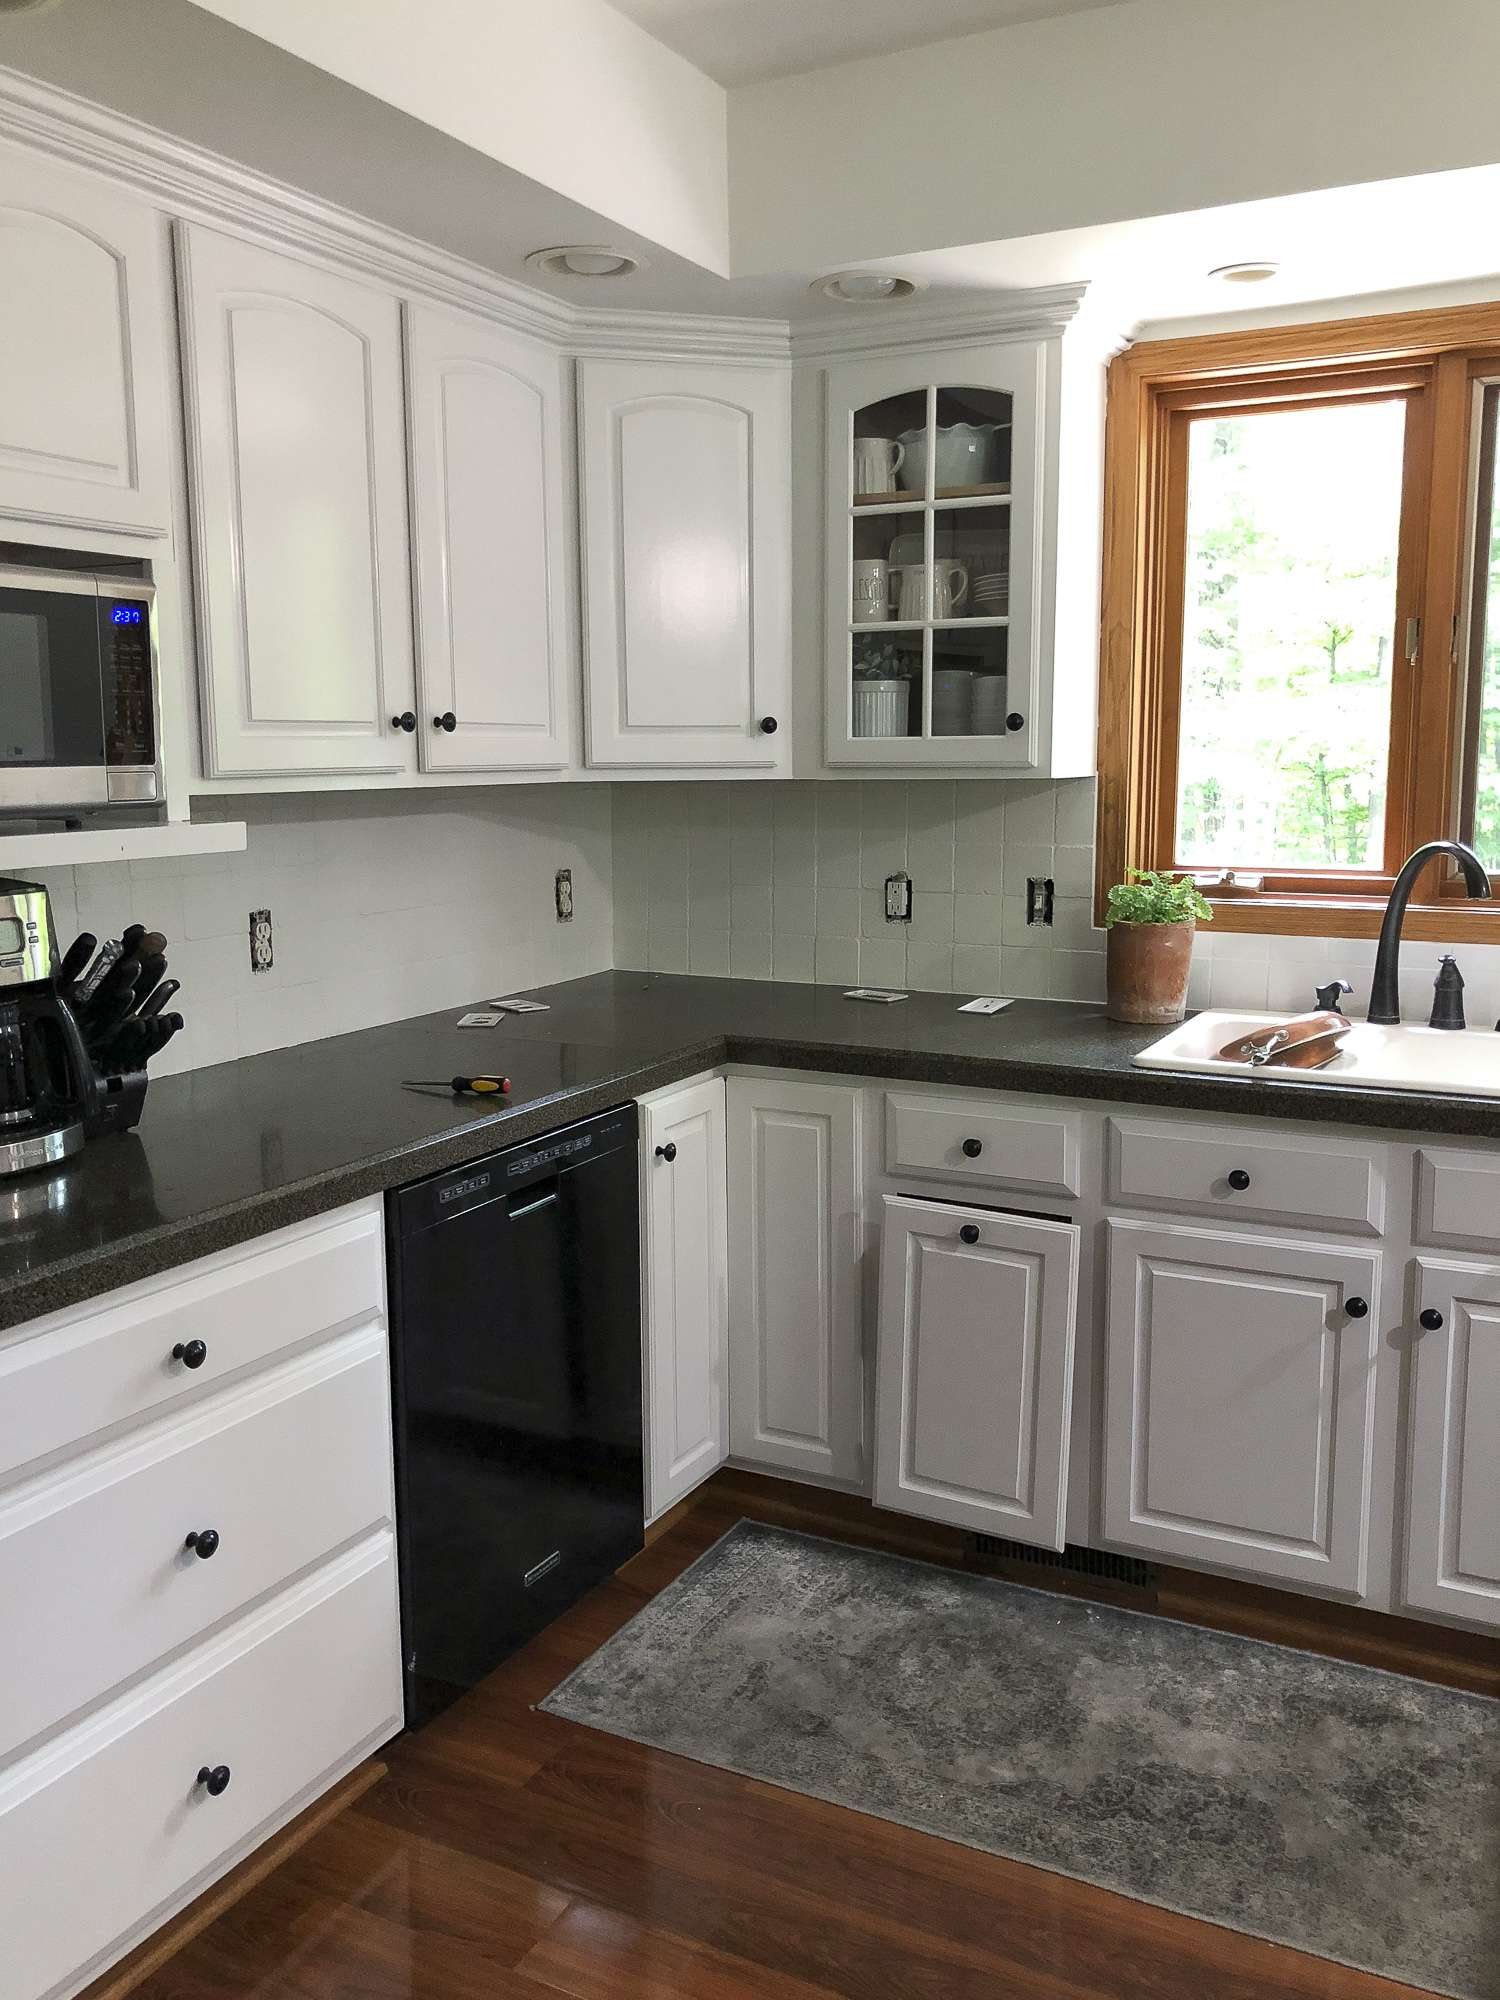 How To Paint A Tile Backsplash Kitchen